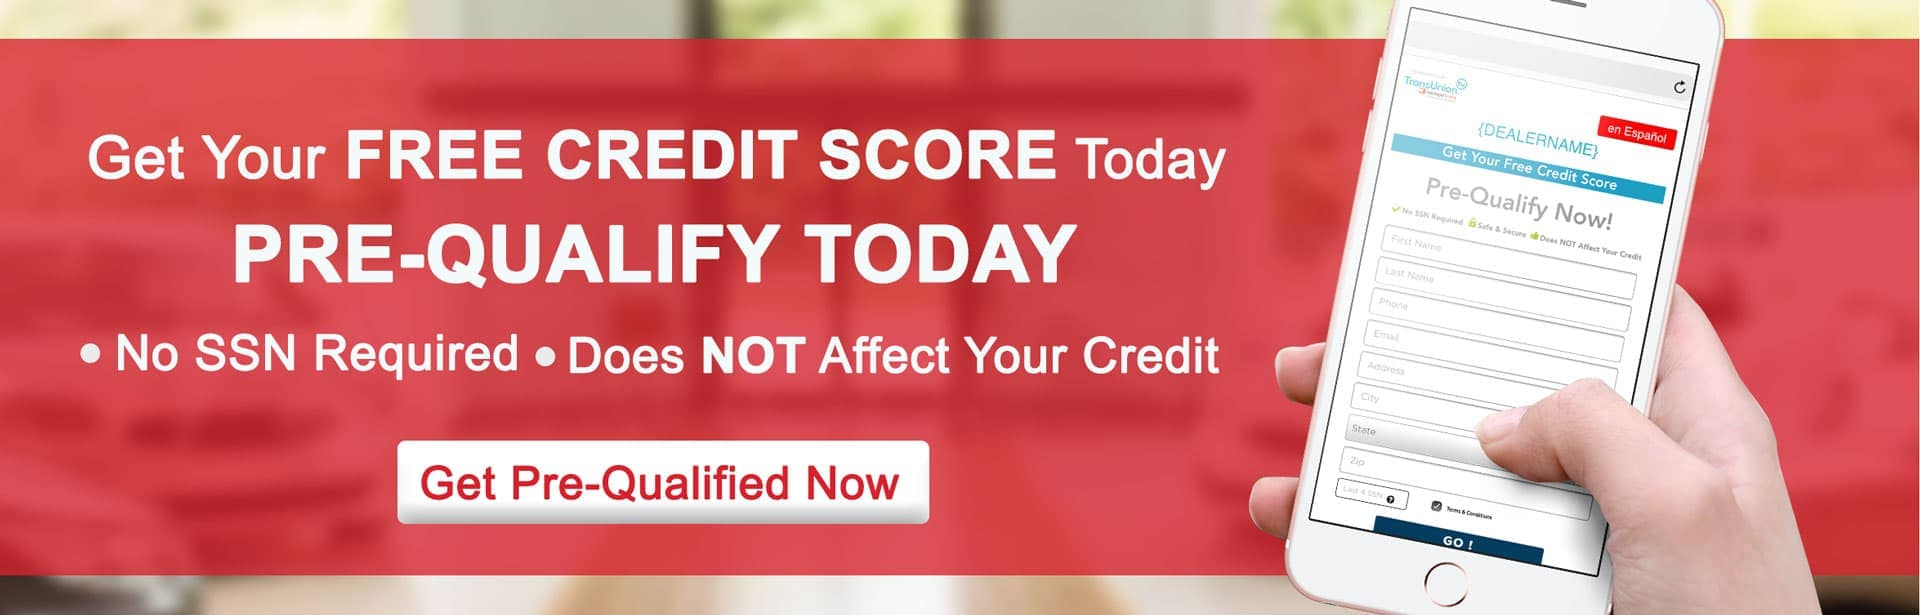 Get Your Free Credit Score Today Banner